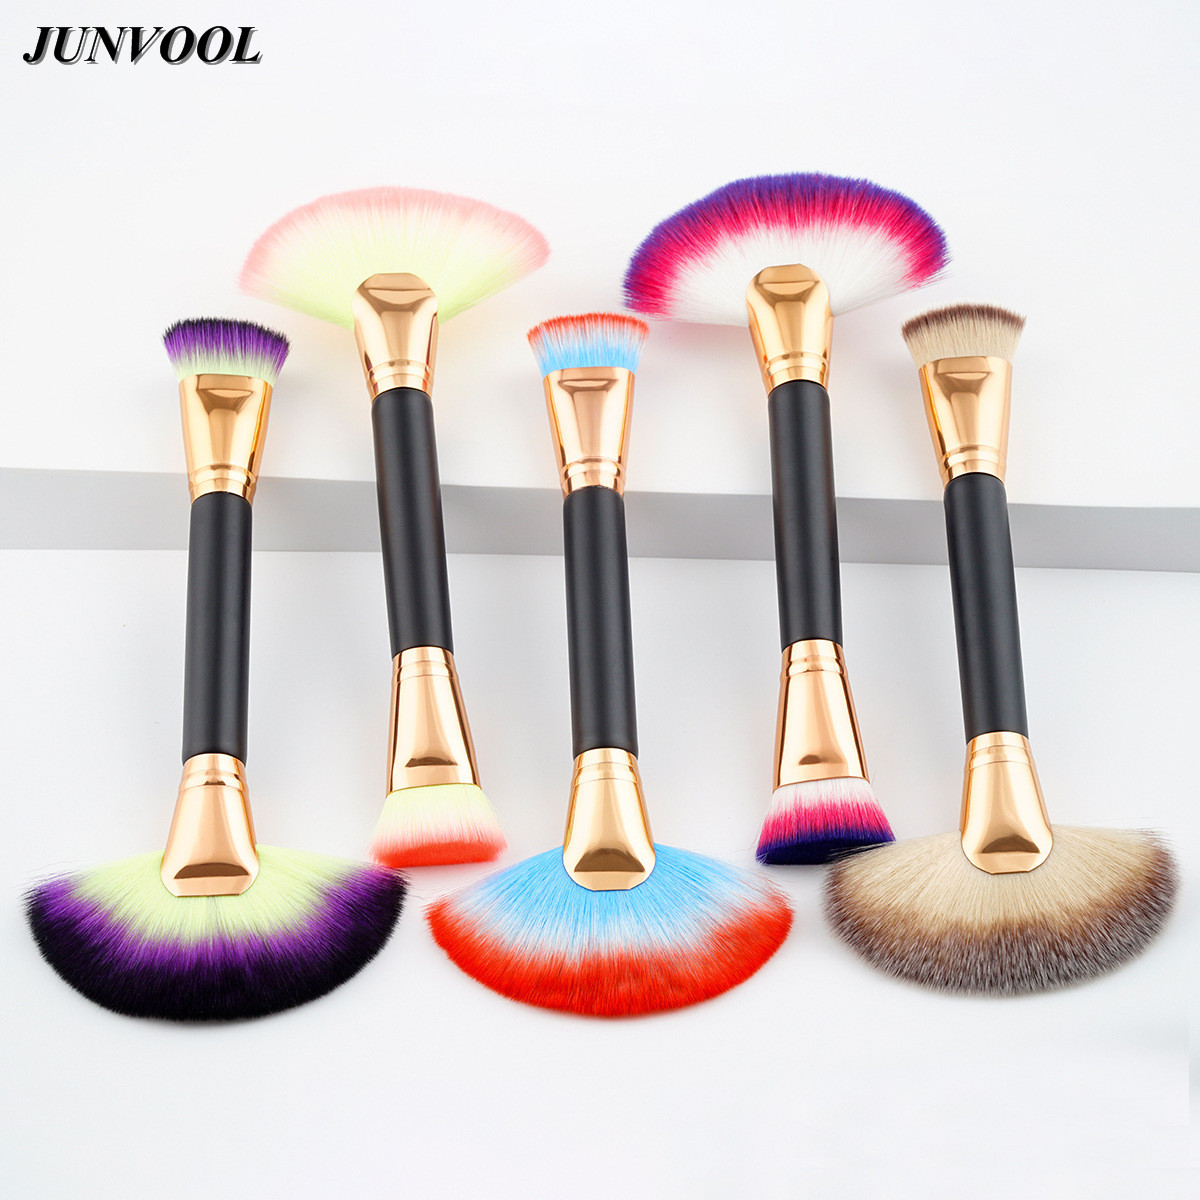 5Pcs Large Fan Shape Makeup Brushes Doubled Ended Pro Face Cosmetic Make Up Tool Foundation Powder Contour Highlighter Brush new design stamp seal shape face makeup brush foundation powder blush contour brush cosmetic facial brush cosmetic makeup tool